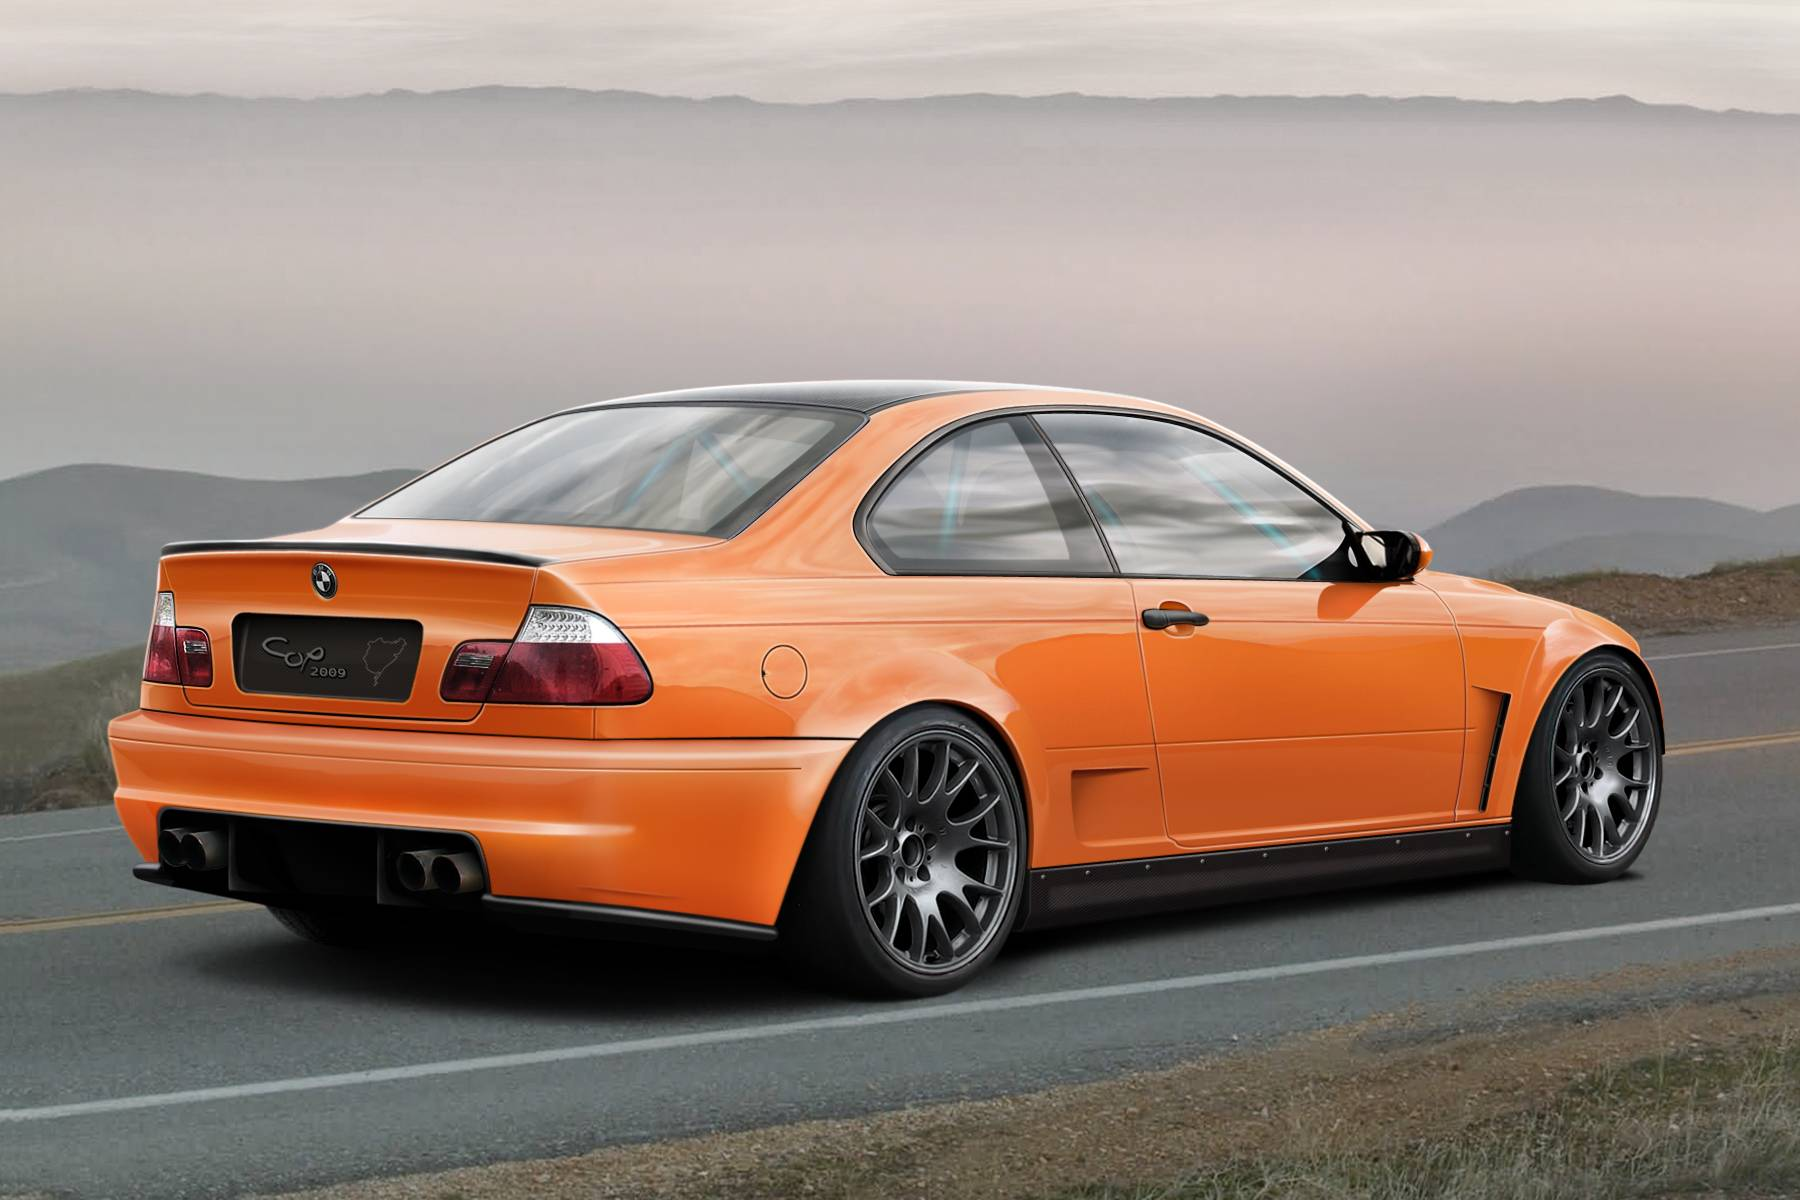 HD Bmw E46 M3 Wallpapers 131 Hd ~ Bmw E46 Black, 4 Door, Body Kit